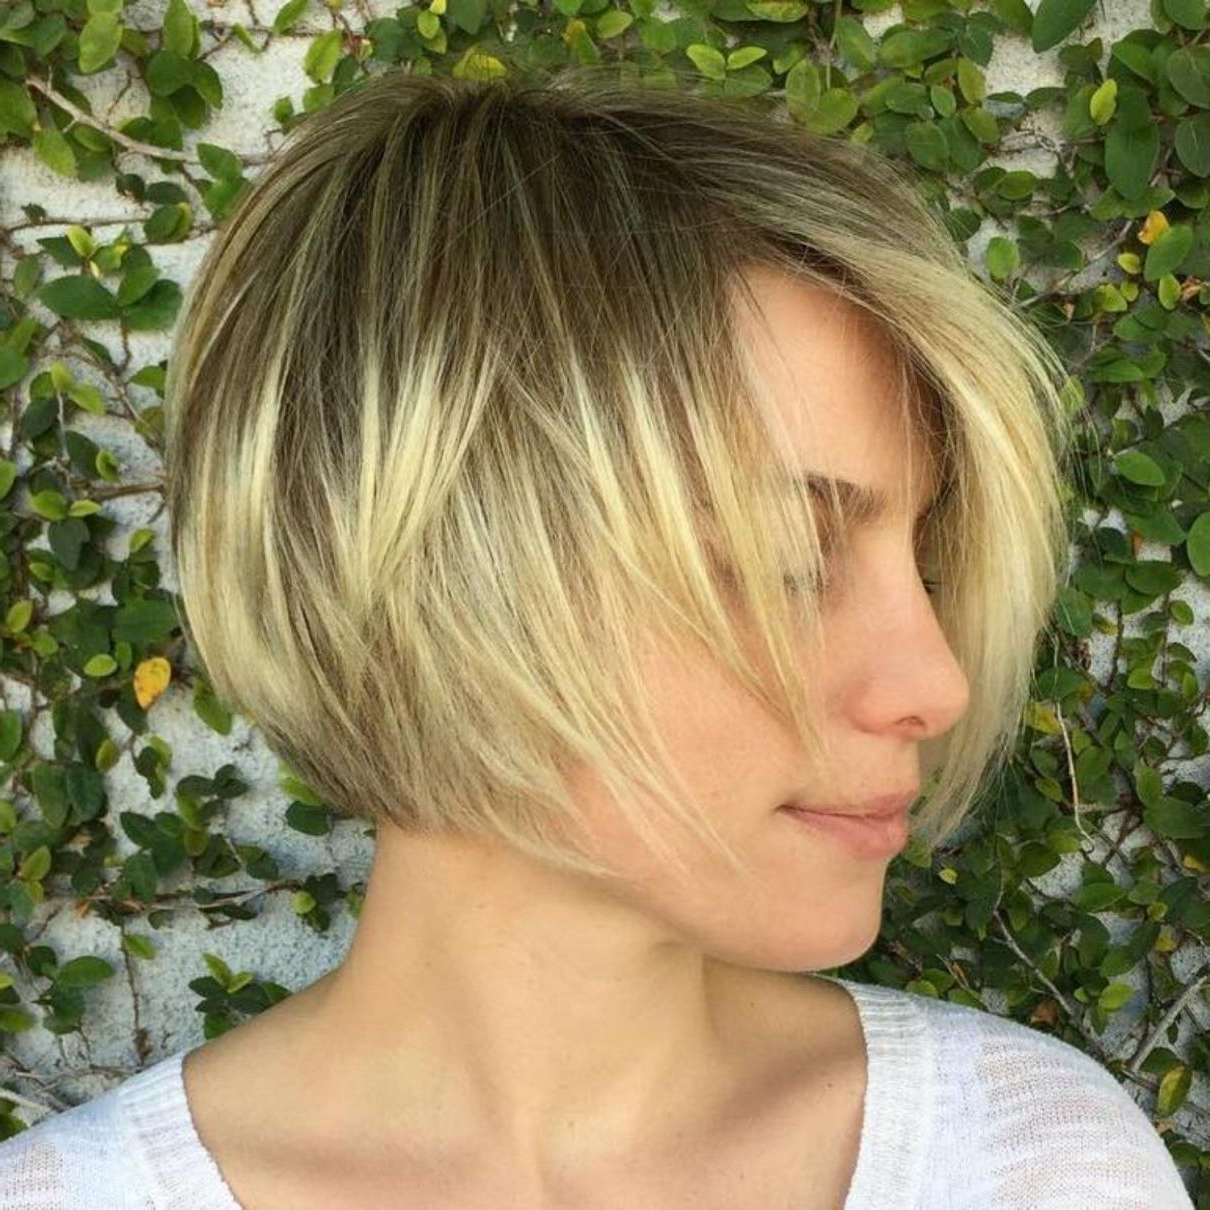 100 Mind Blowing Short Hairstyles For Fine Hair | Hair Inspo Throughout Dynamic Tousled Blonde Bob Hairstyles With Dark Underlayer (View 5 of 20)